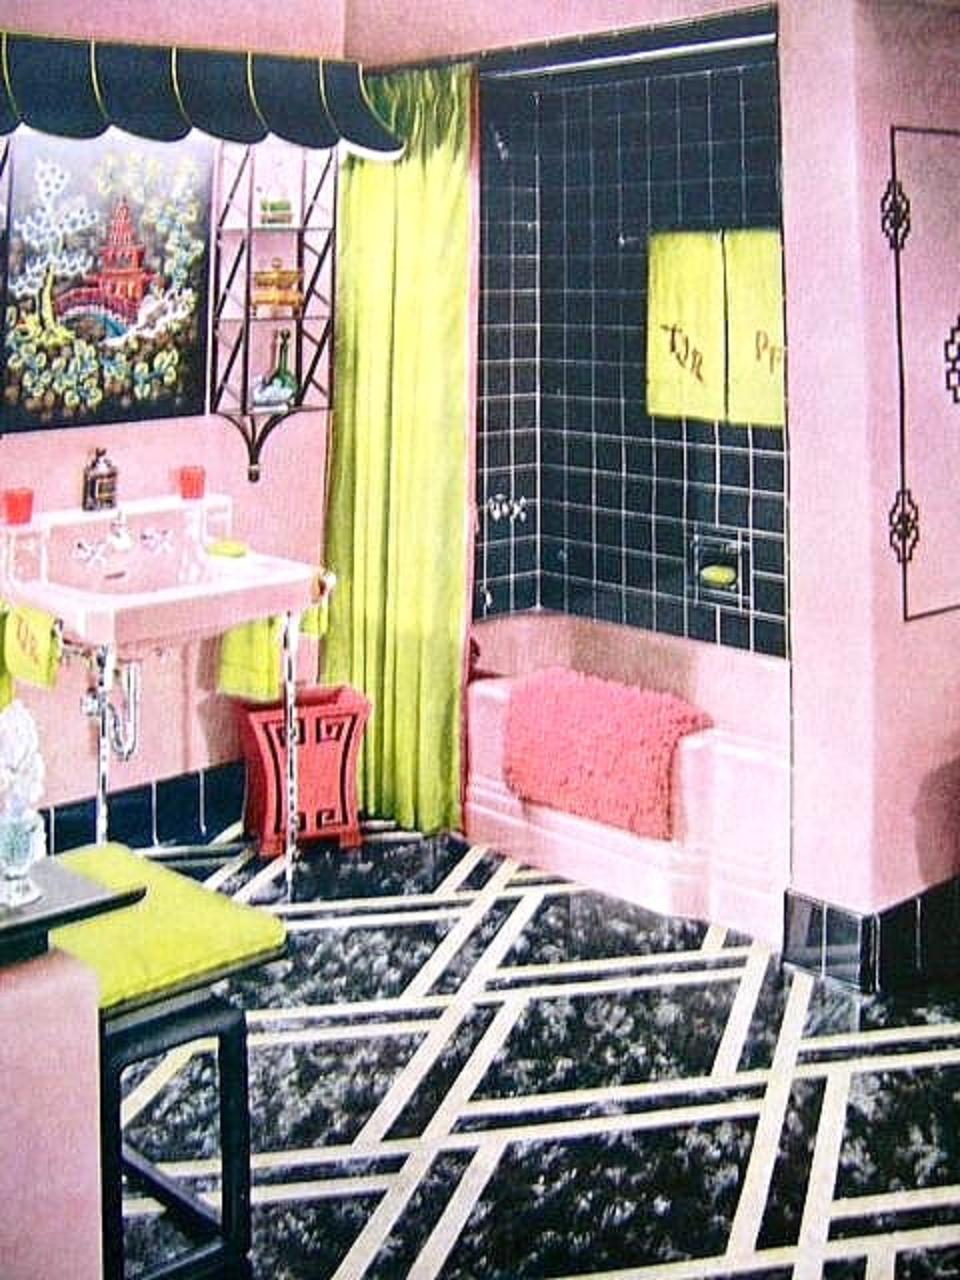 960 1280 home spiration for Pink black bathroom ideas